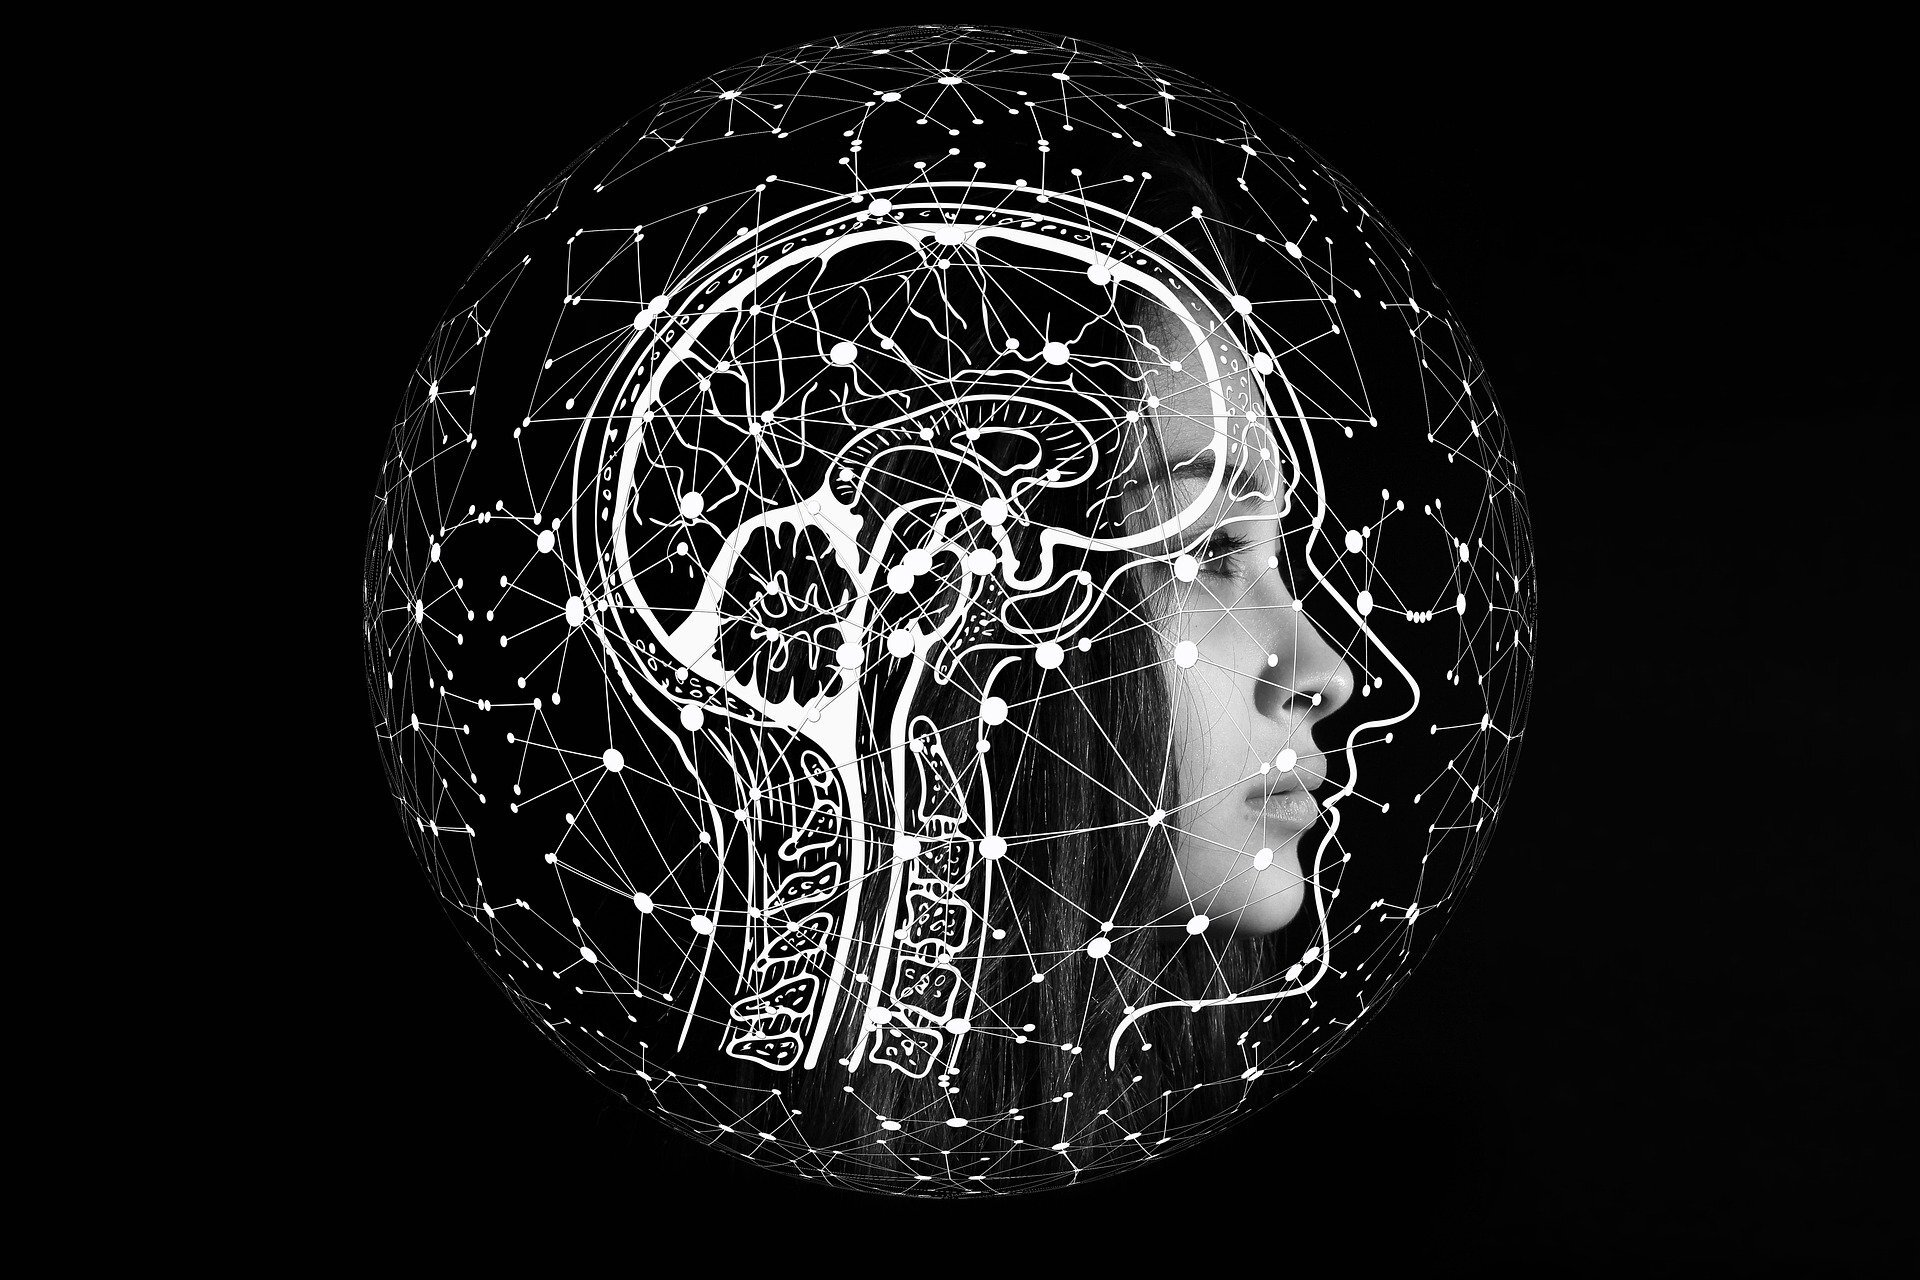 Artificial intelligence sheds light on how the brain processes language